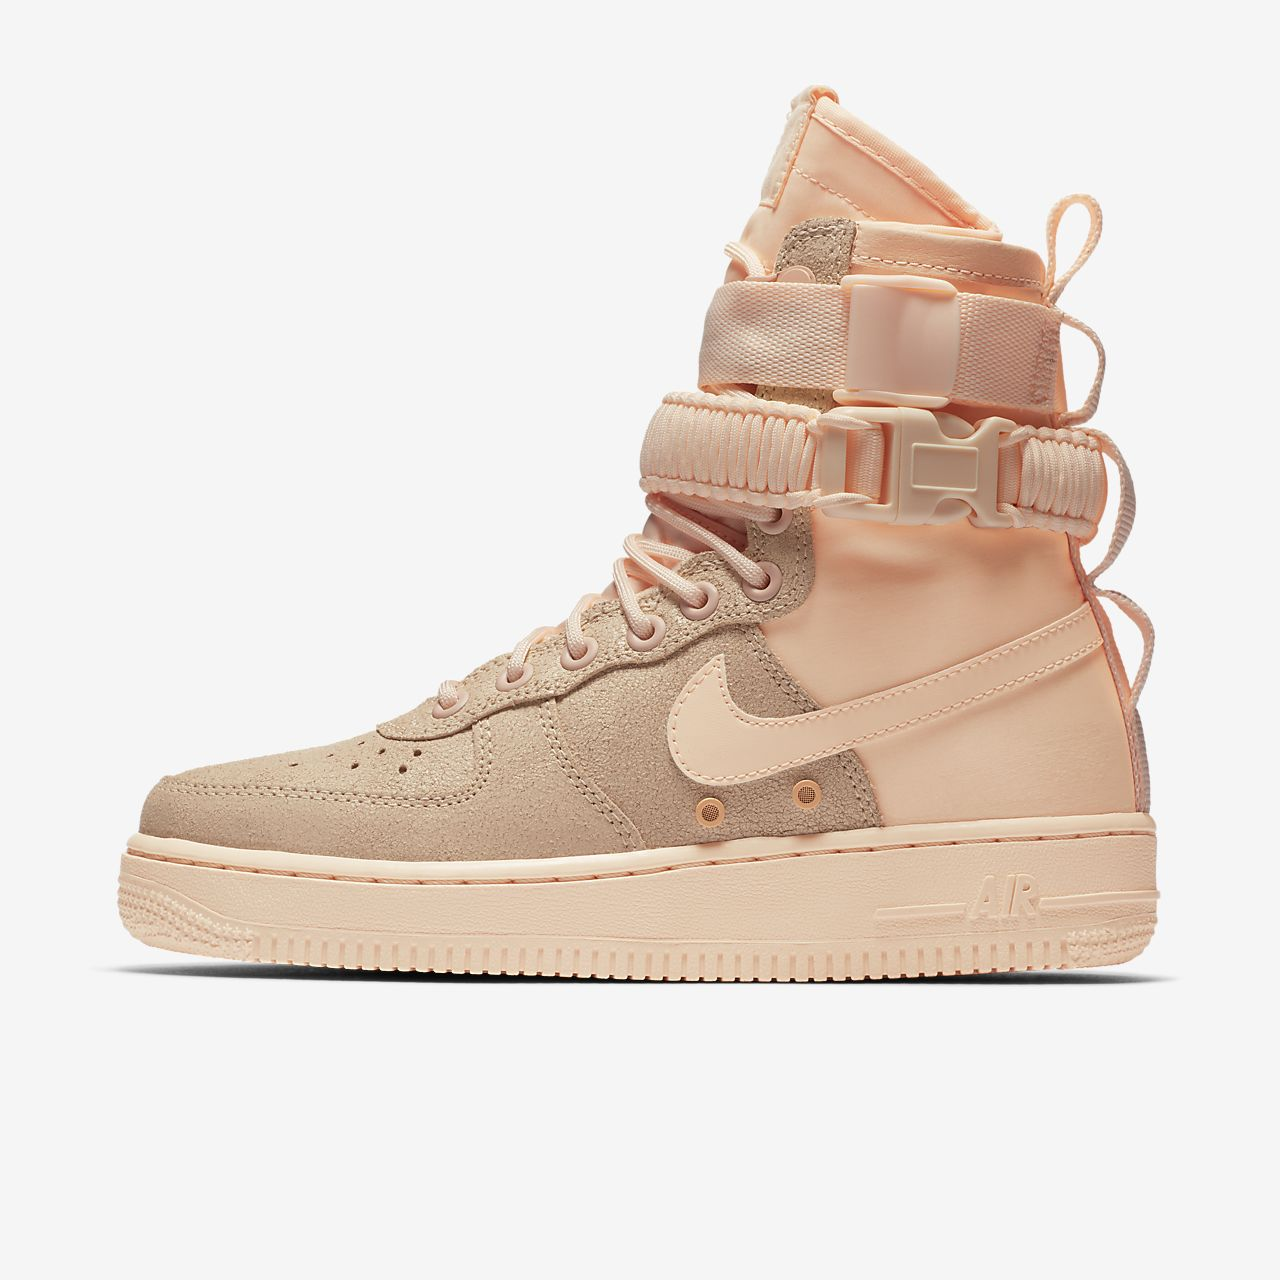 super popular 06c34 90f60 ... Nike SF Air Force 1 Womens Boot